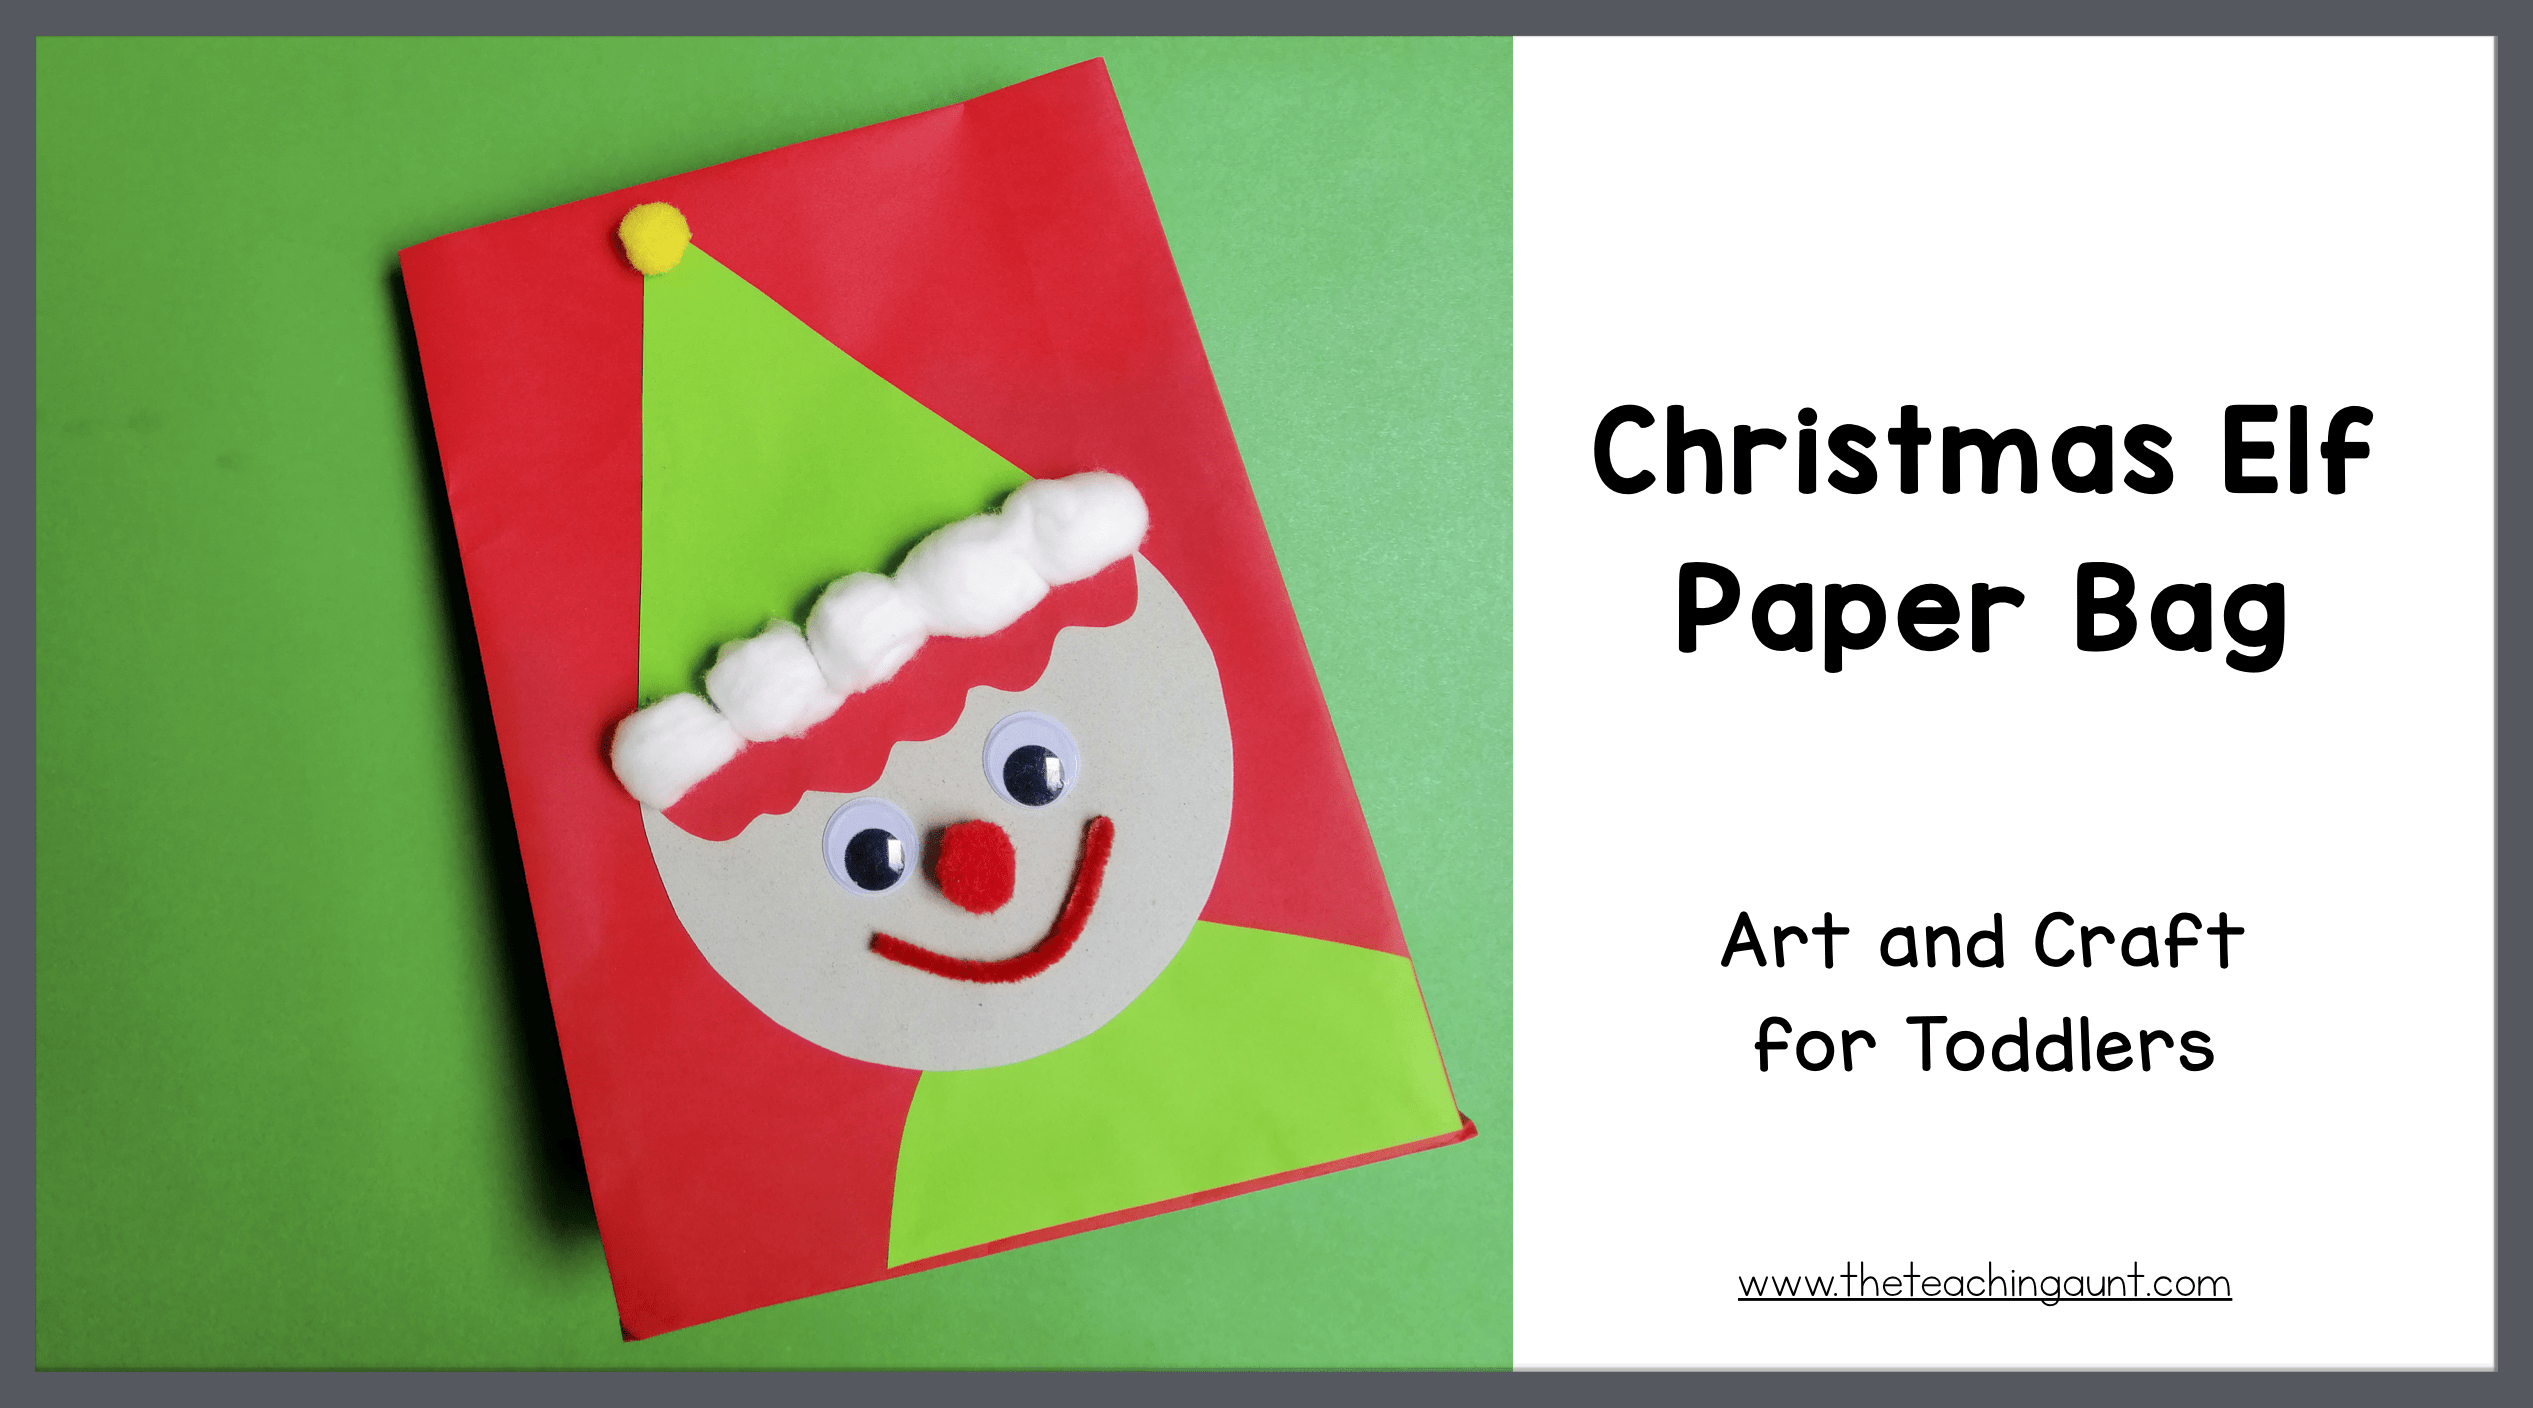 Christmas Elf Paper Bag Art and Craft for Toddlers